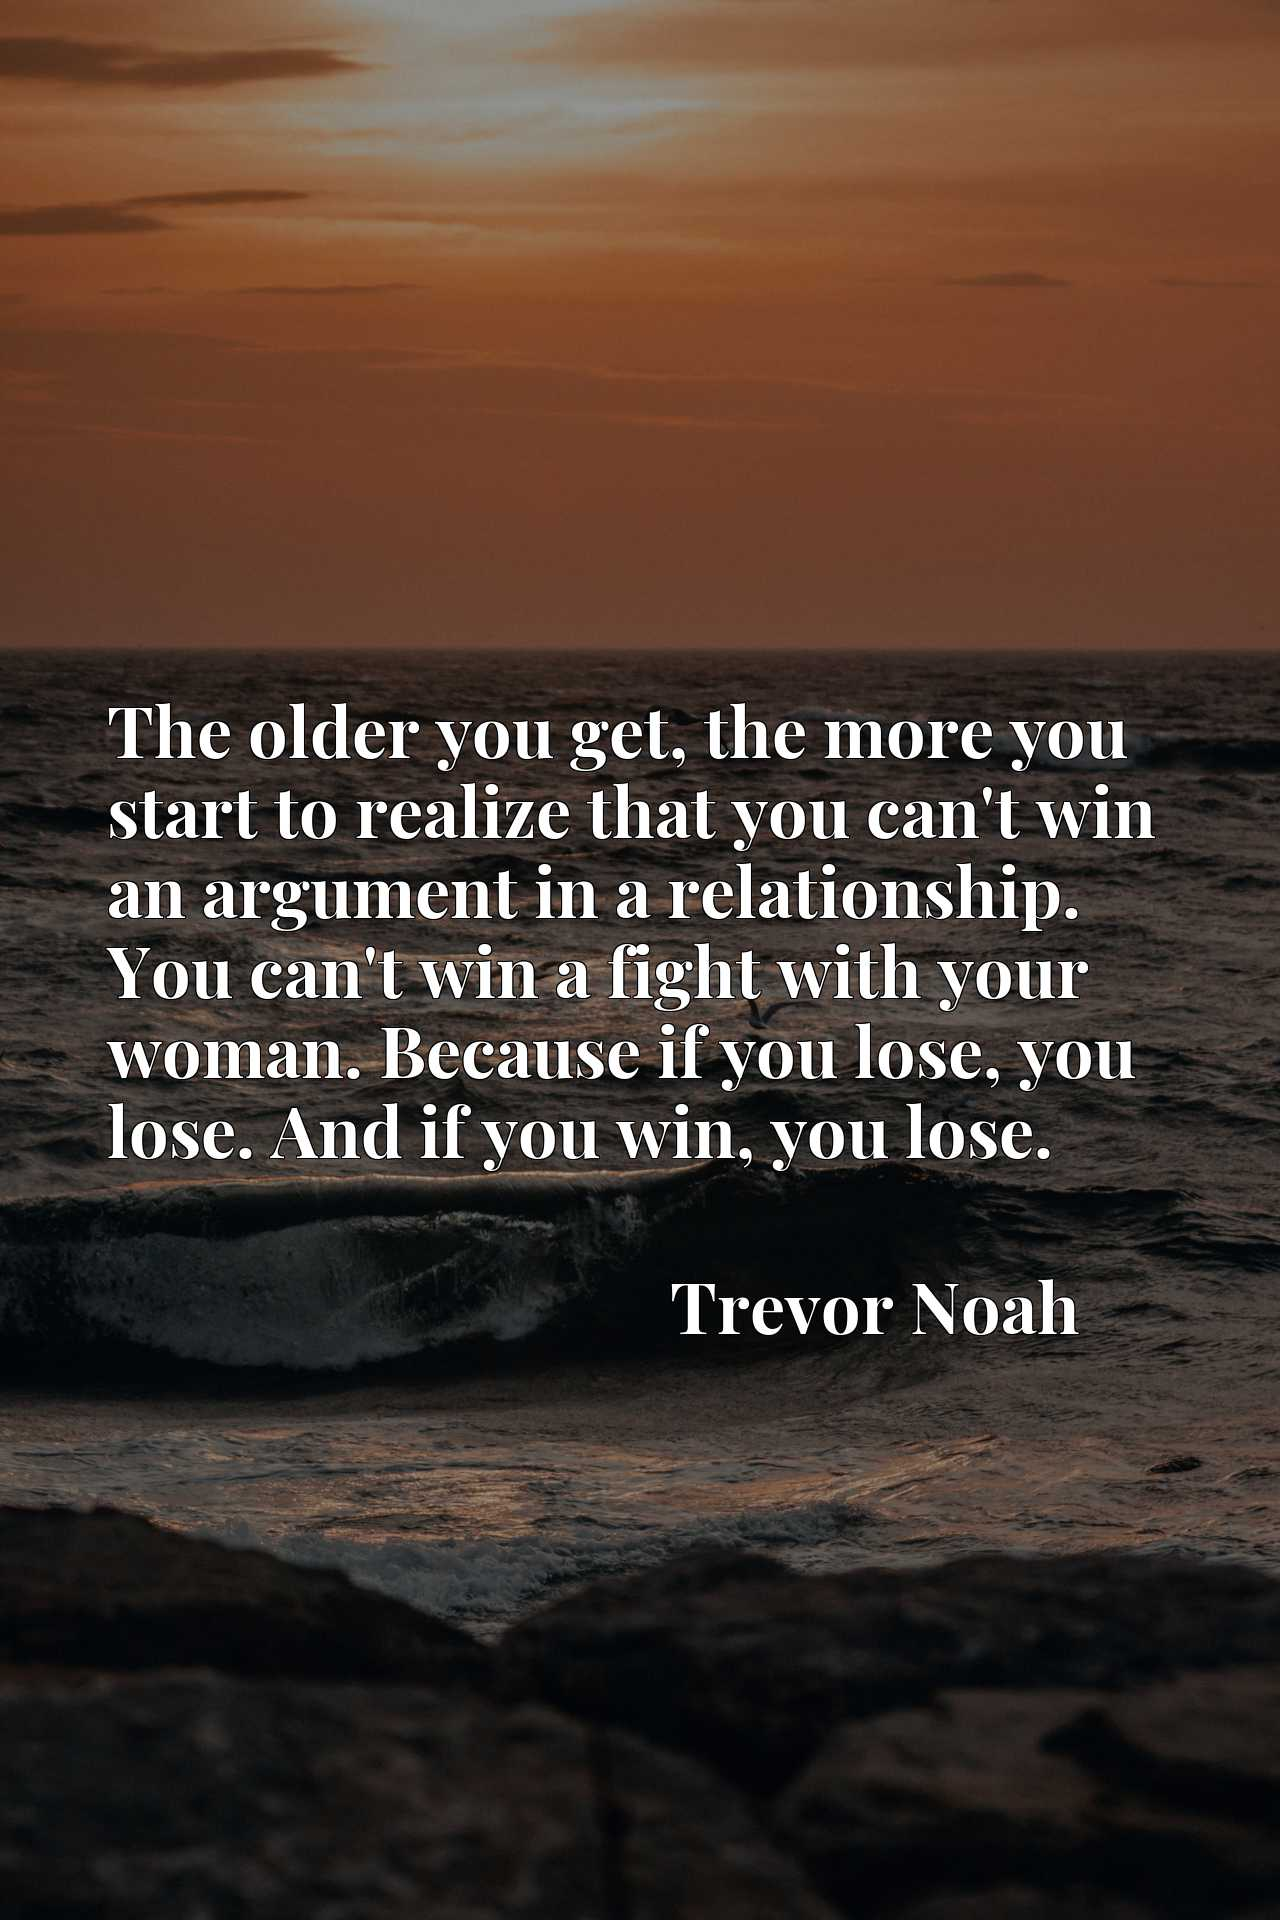 The older you get, the more you start to realize that you can't win an argument in a relationship. You can't win a fight with your woman. Because if you lose, you lose. And if you win, you lose.